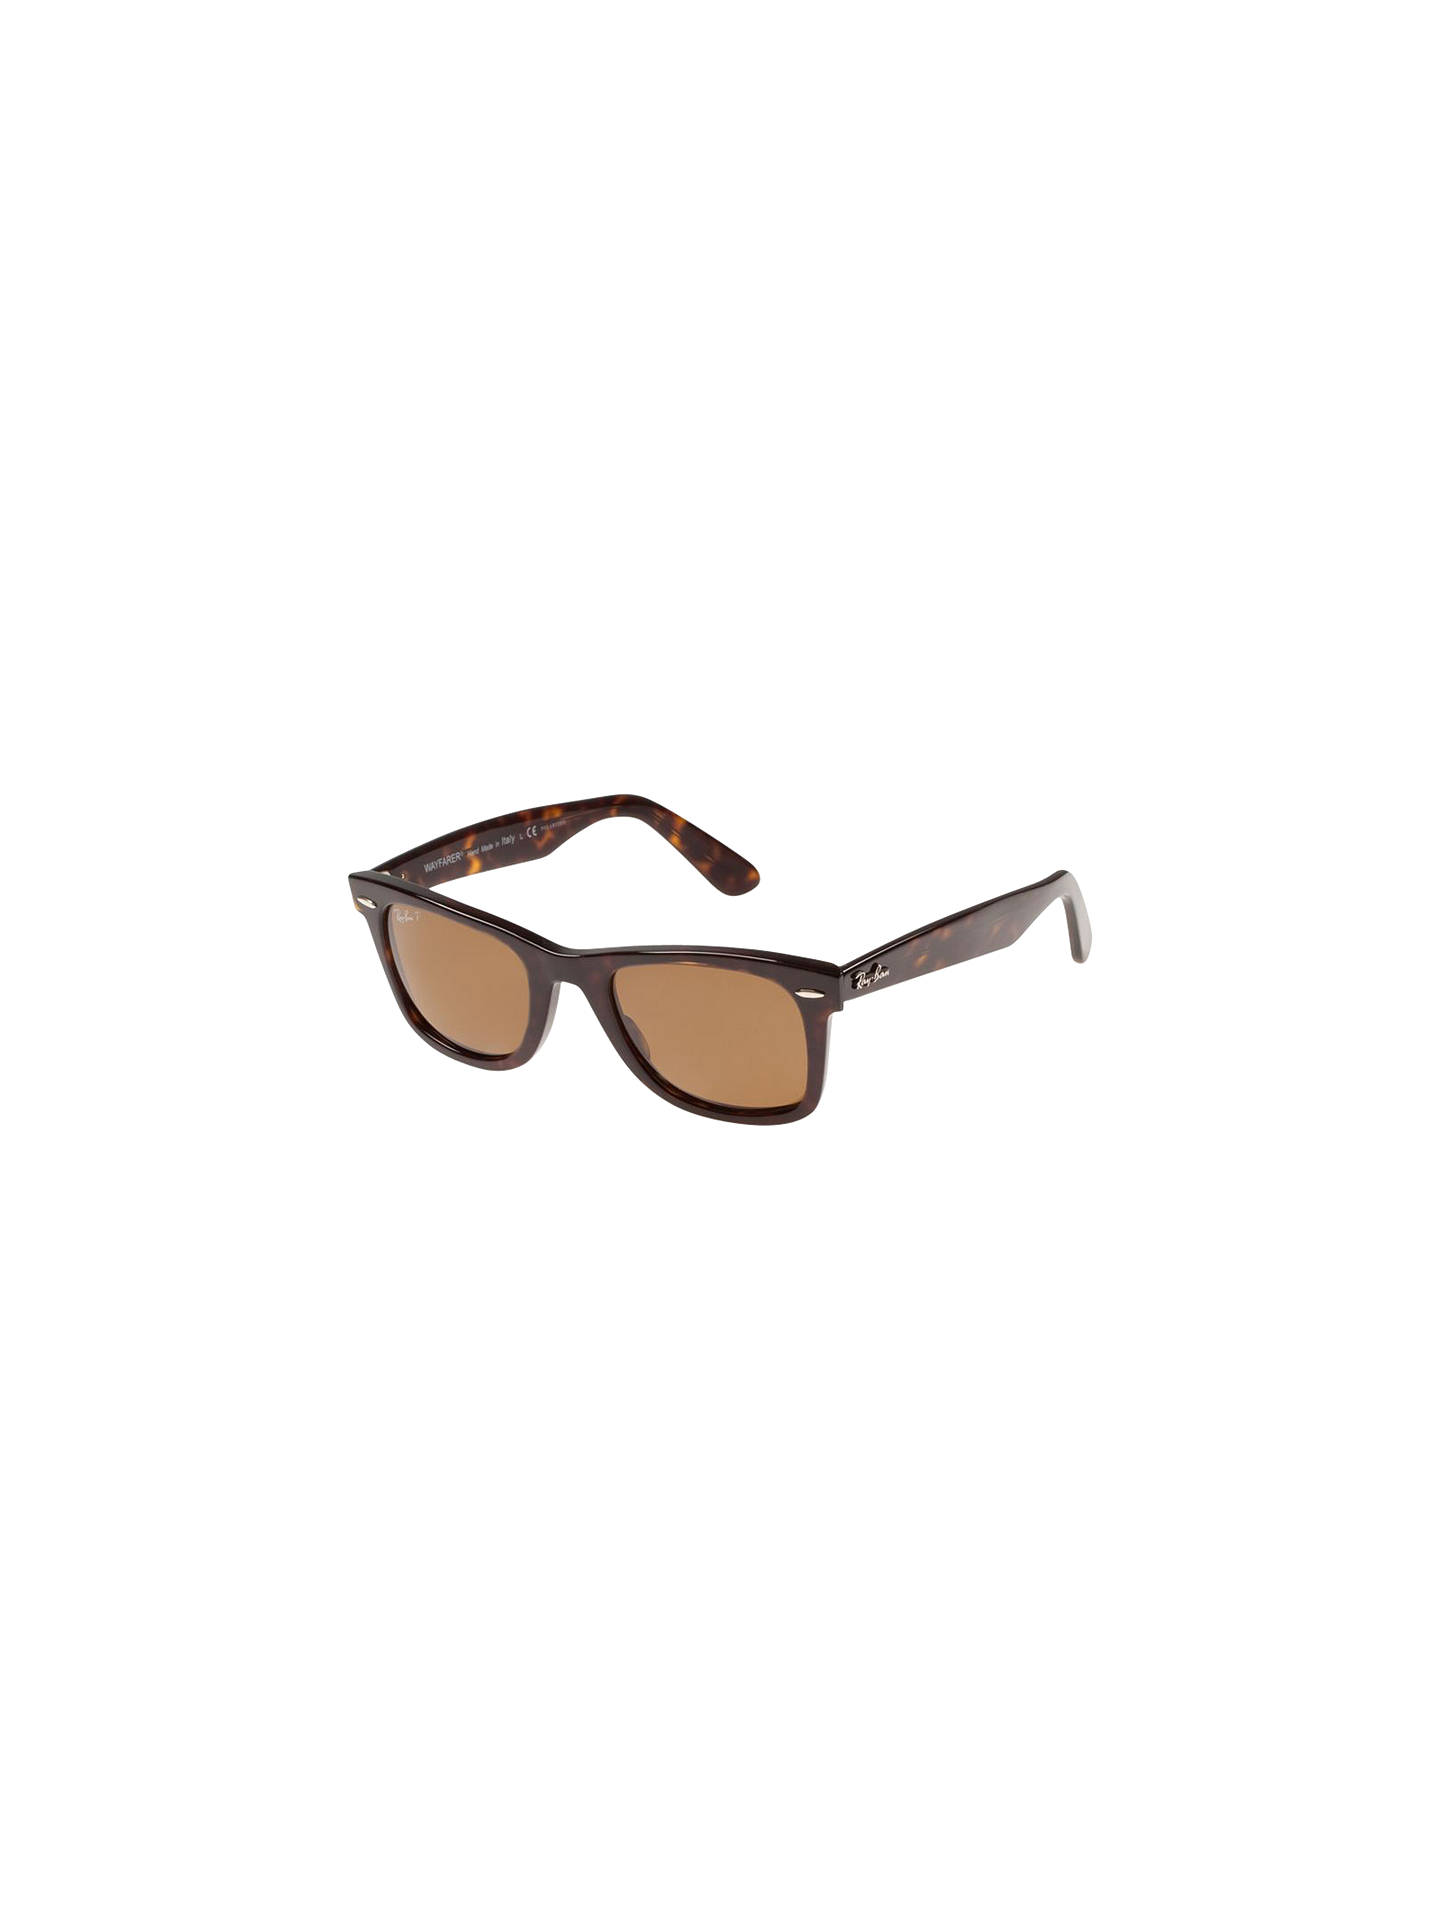 7a151136da Ray-Ban RB2132 Original Wayfarer Polarised Sunglasses at John Lewis ...